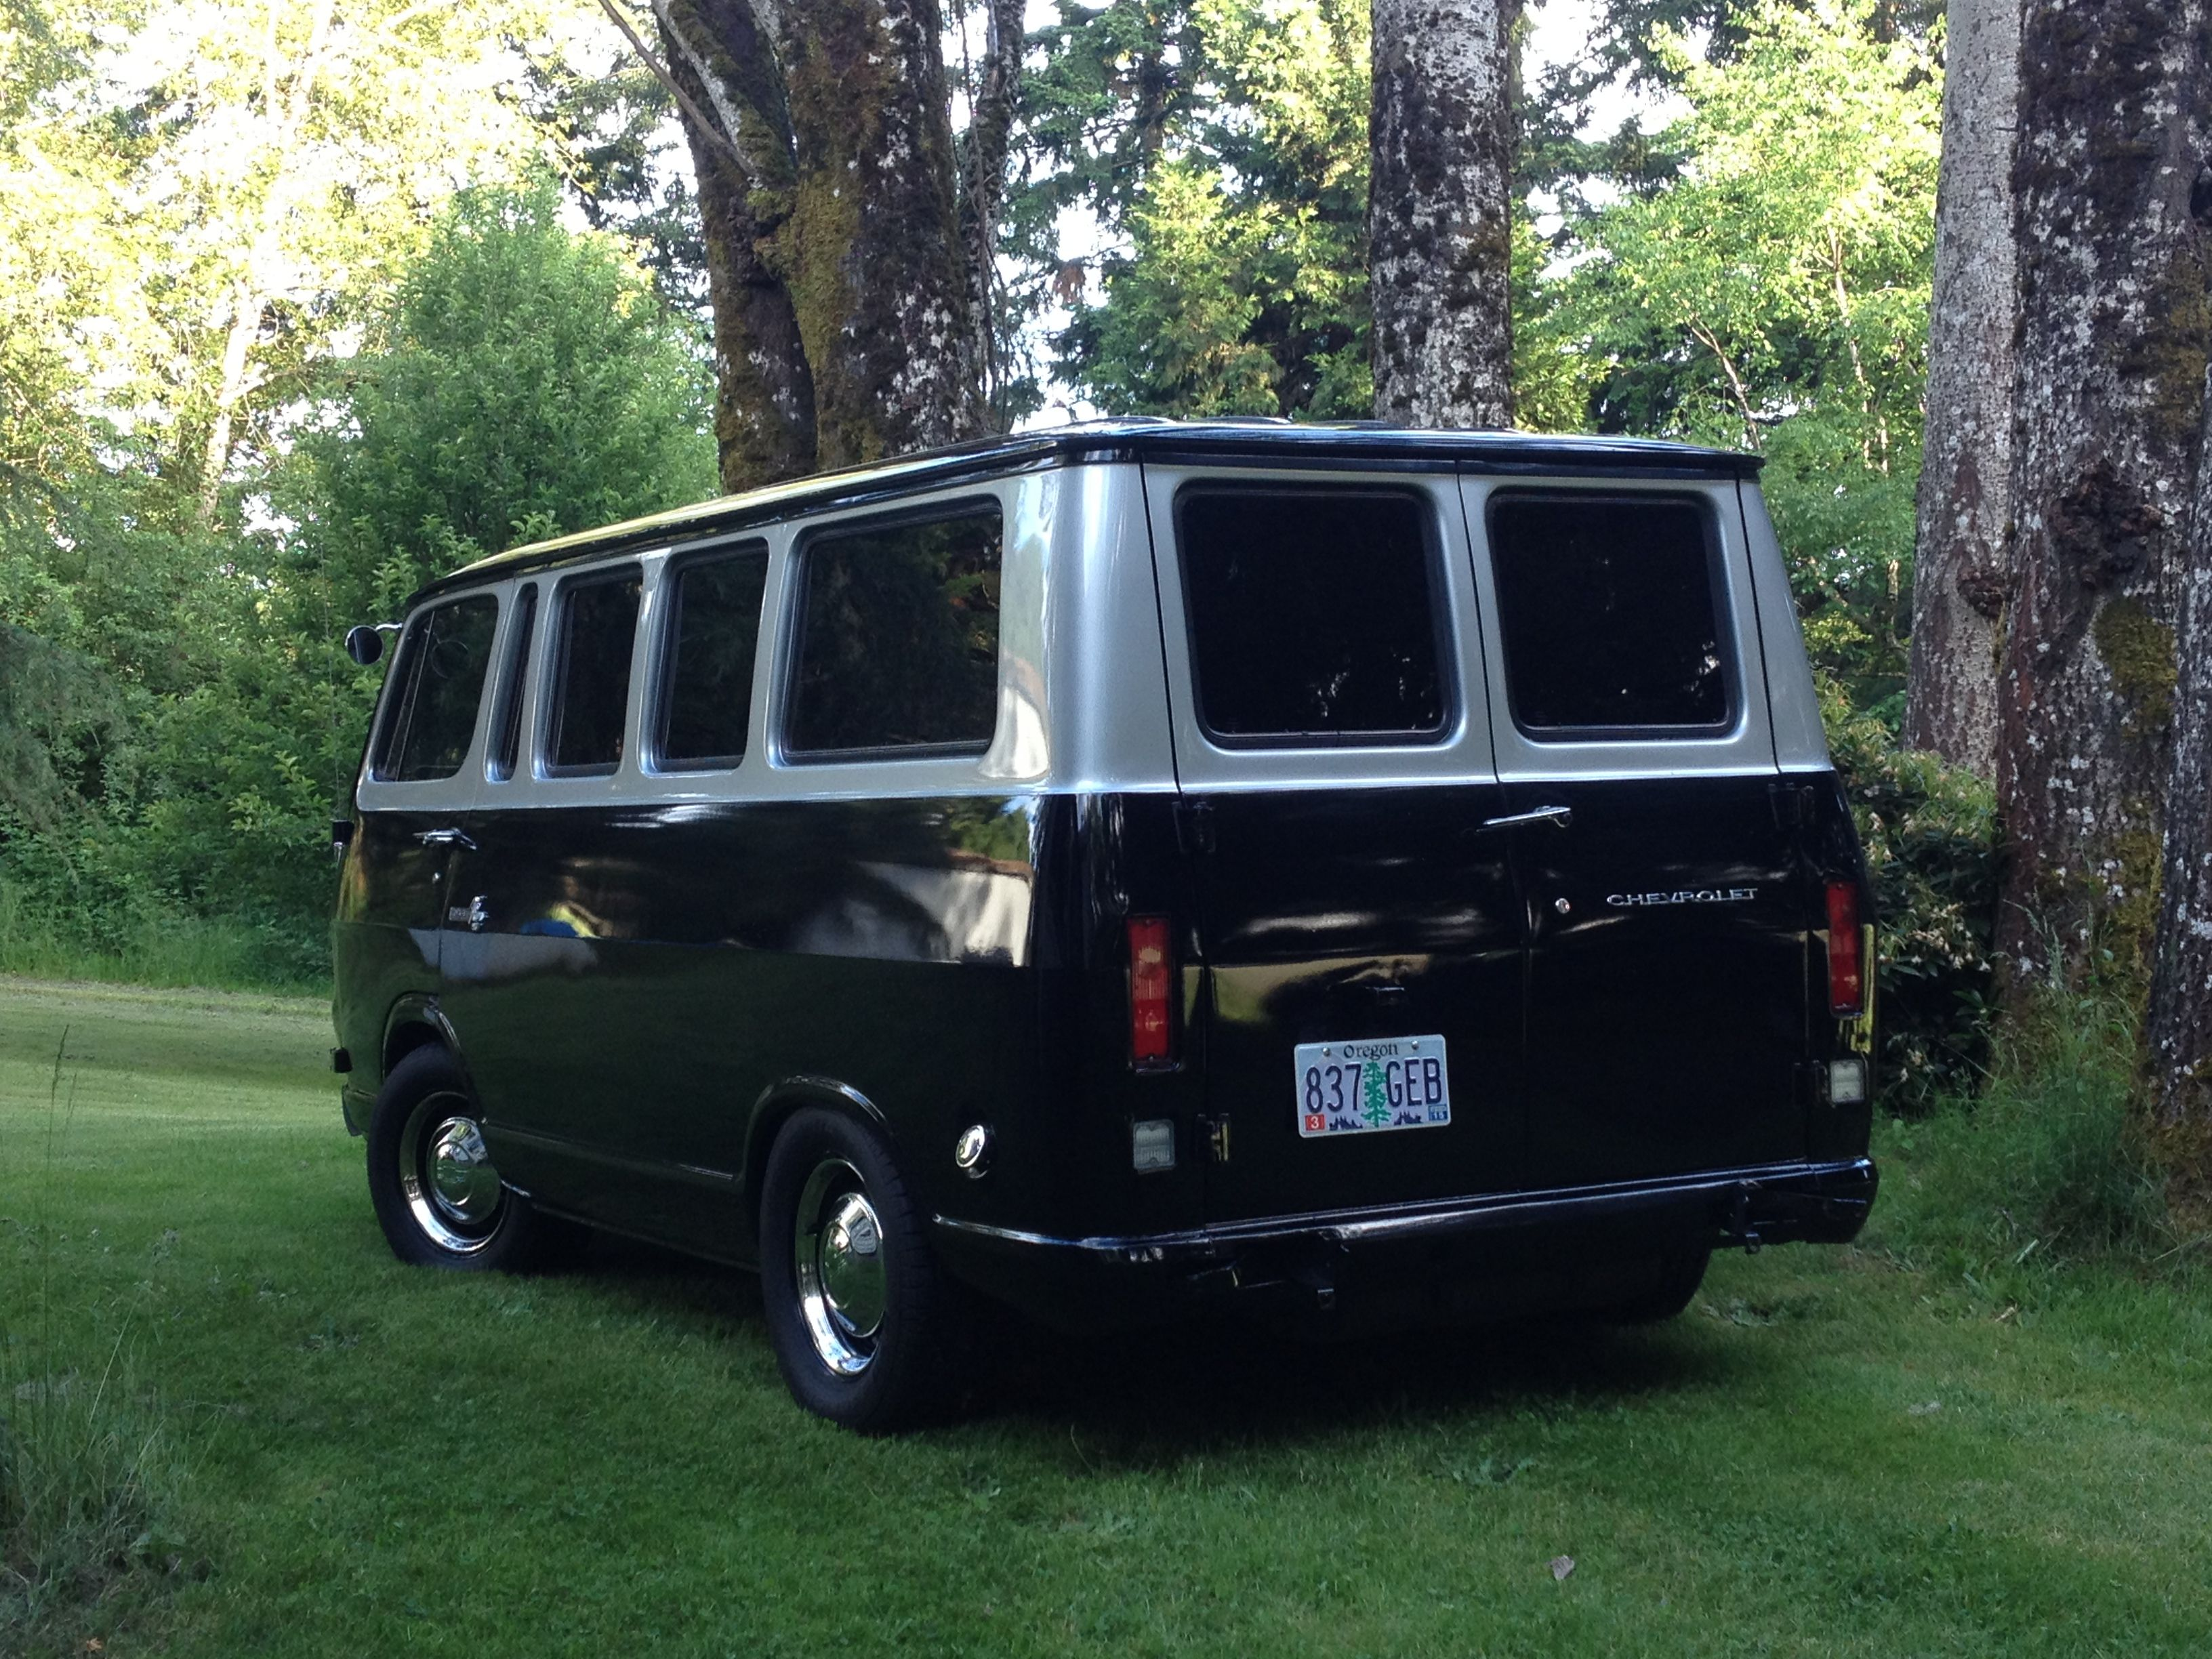 310 best Chevy van images on Pinterest | Chevy vans, Custom vans and ...